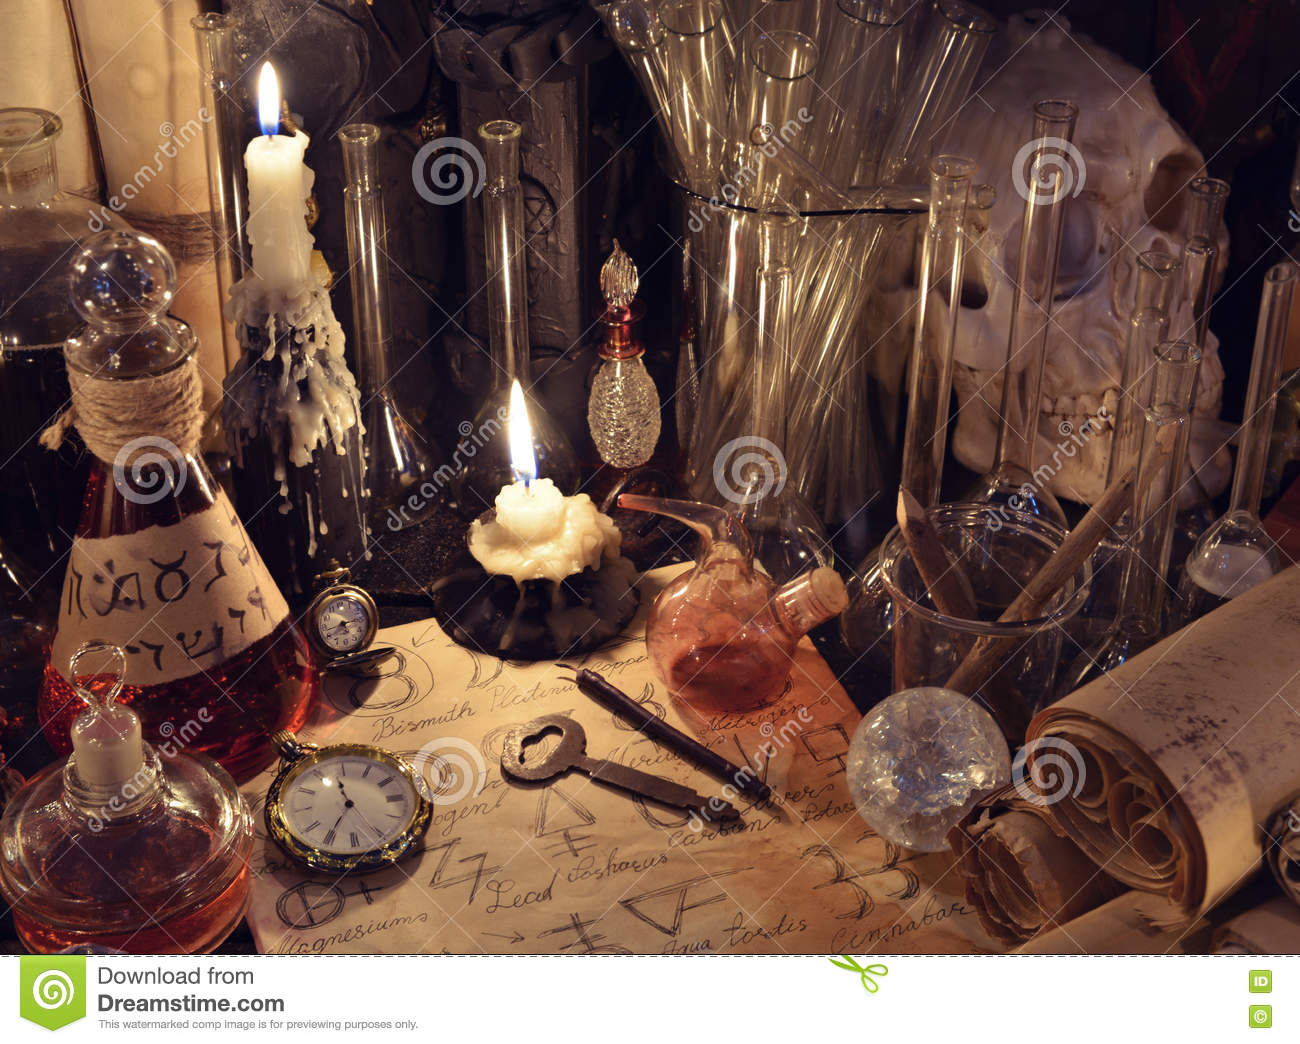 Still Life With Vintage Bottles Magic Objects And Paper Alchemy Signs